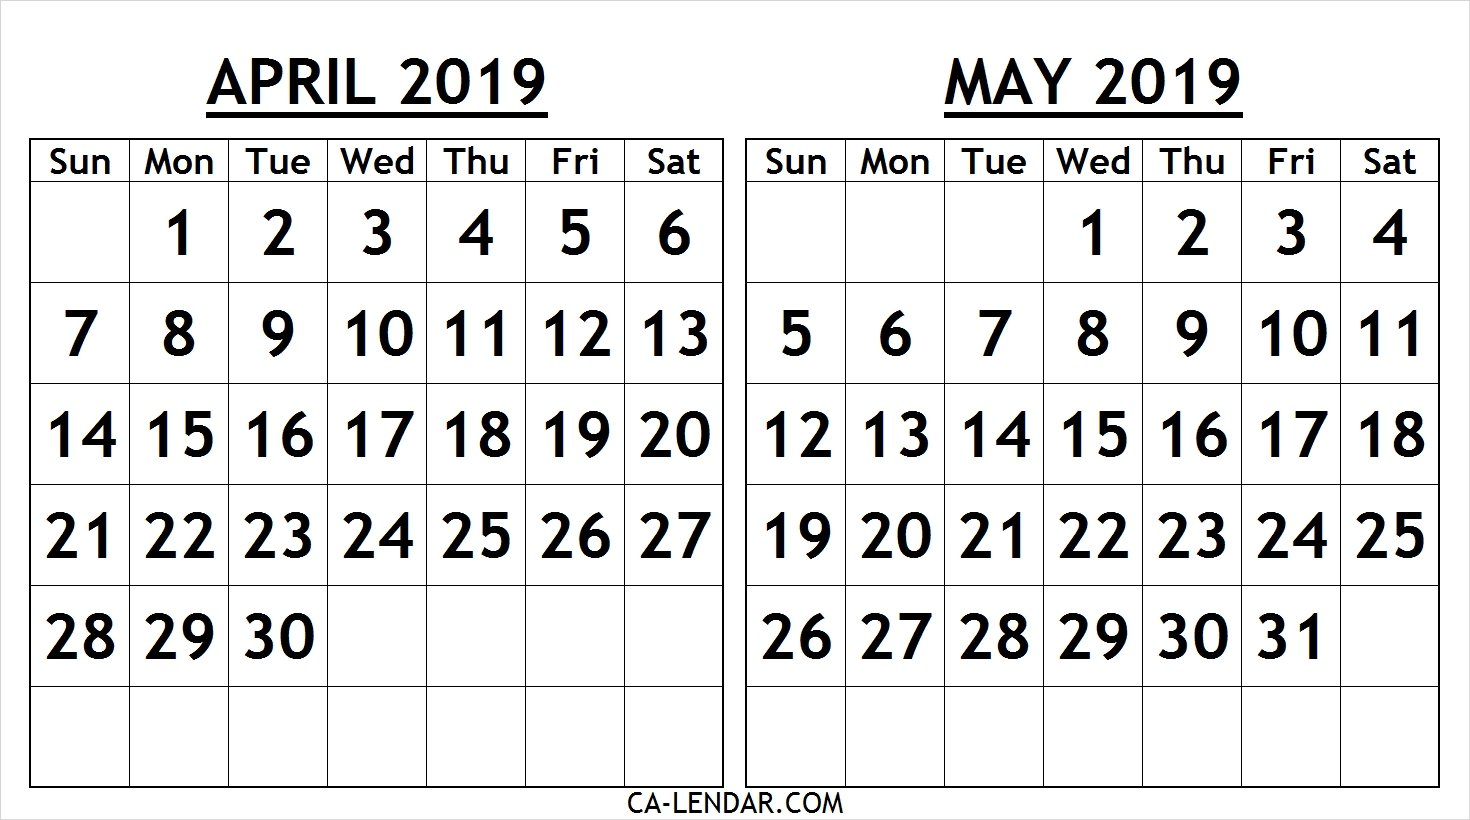 Printable April May 2019 Calendar Template - Free Printable Calendar Calendar 2019 April May